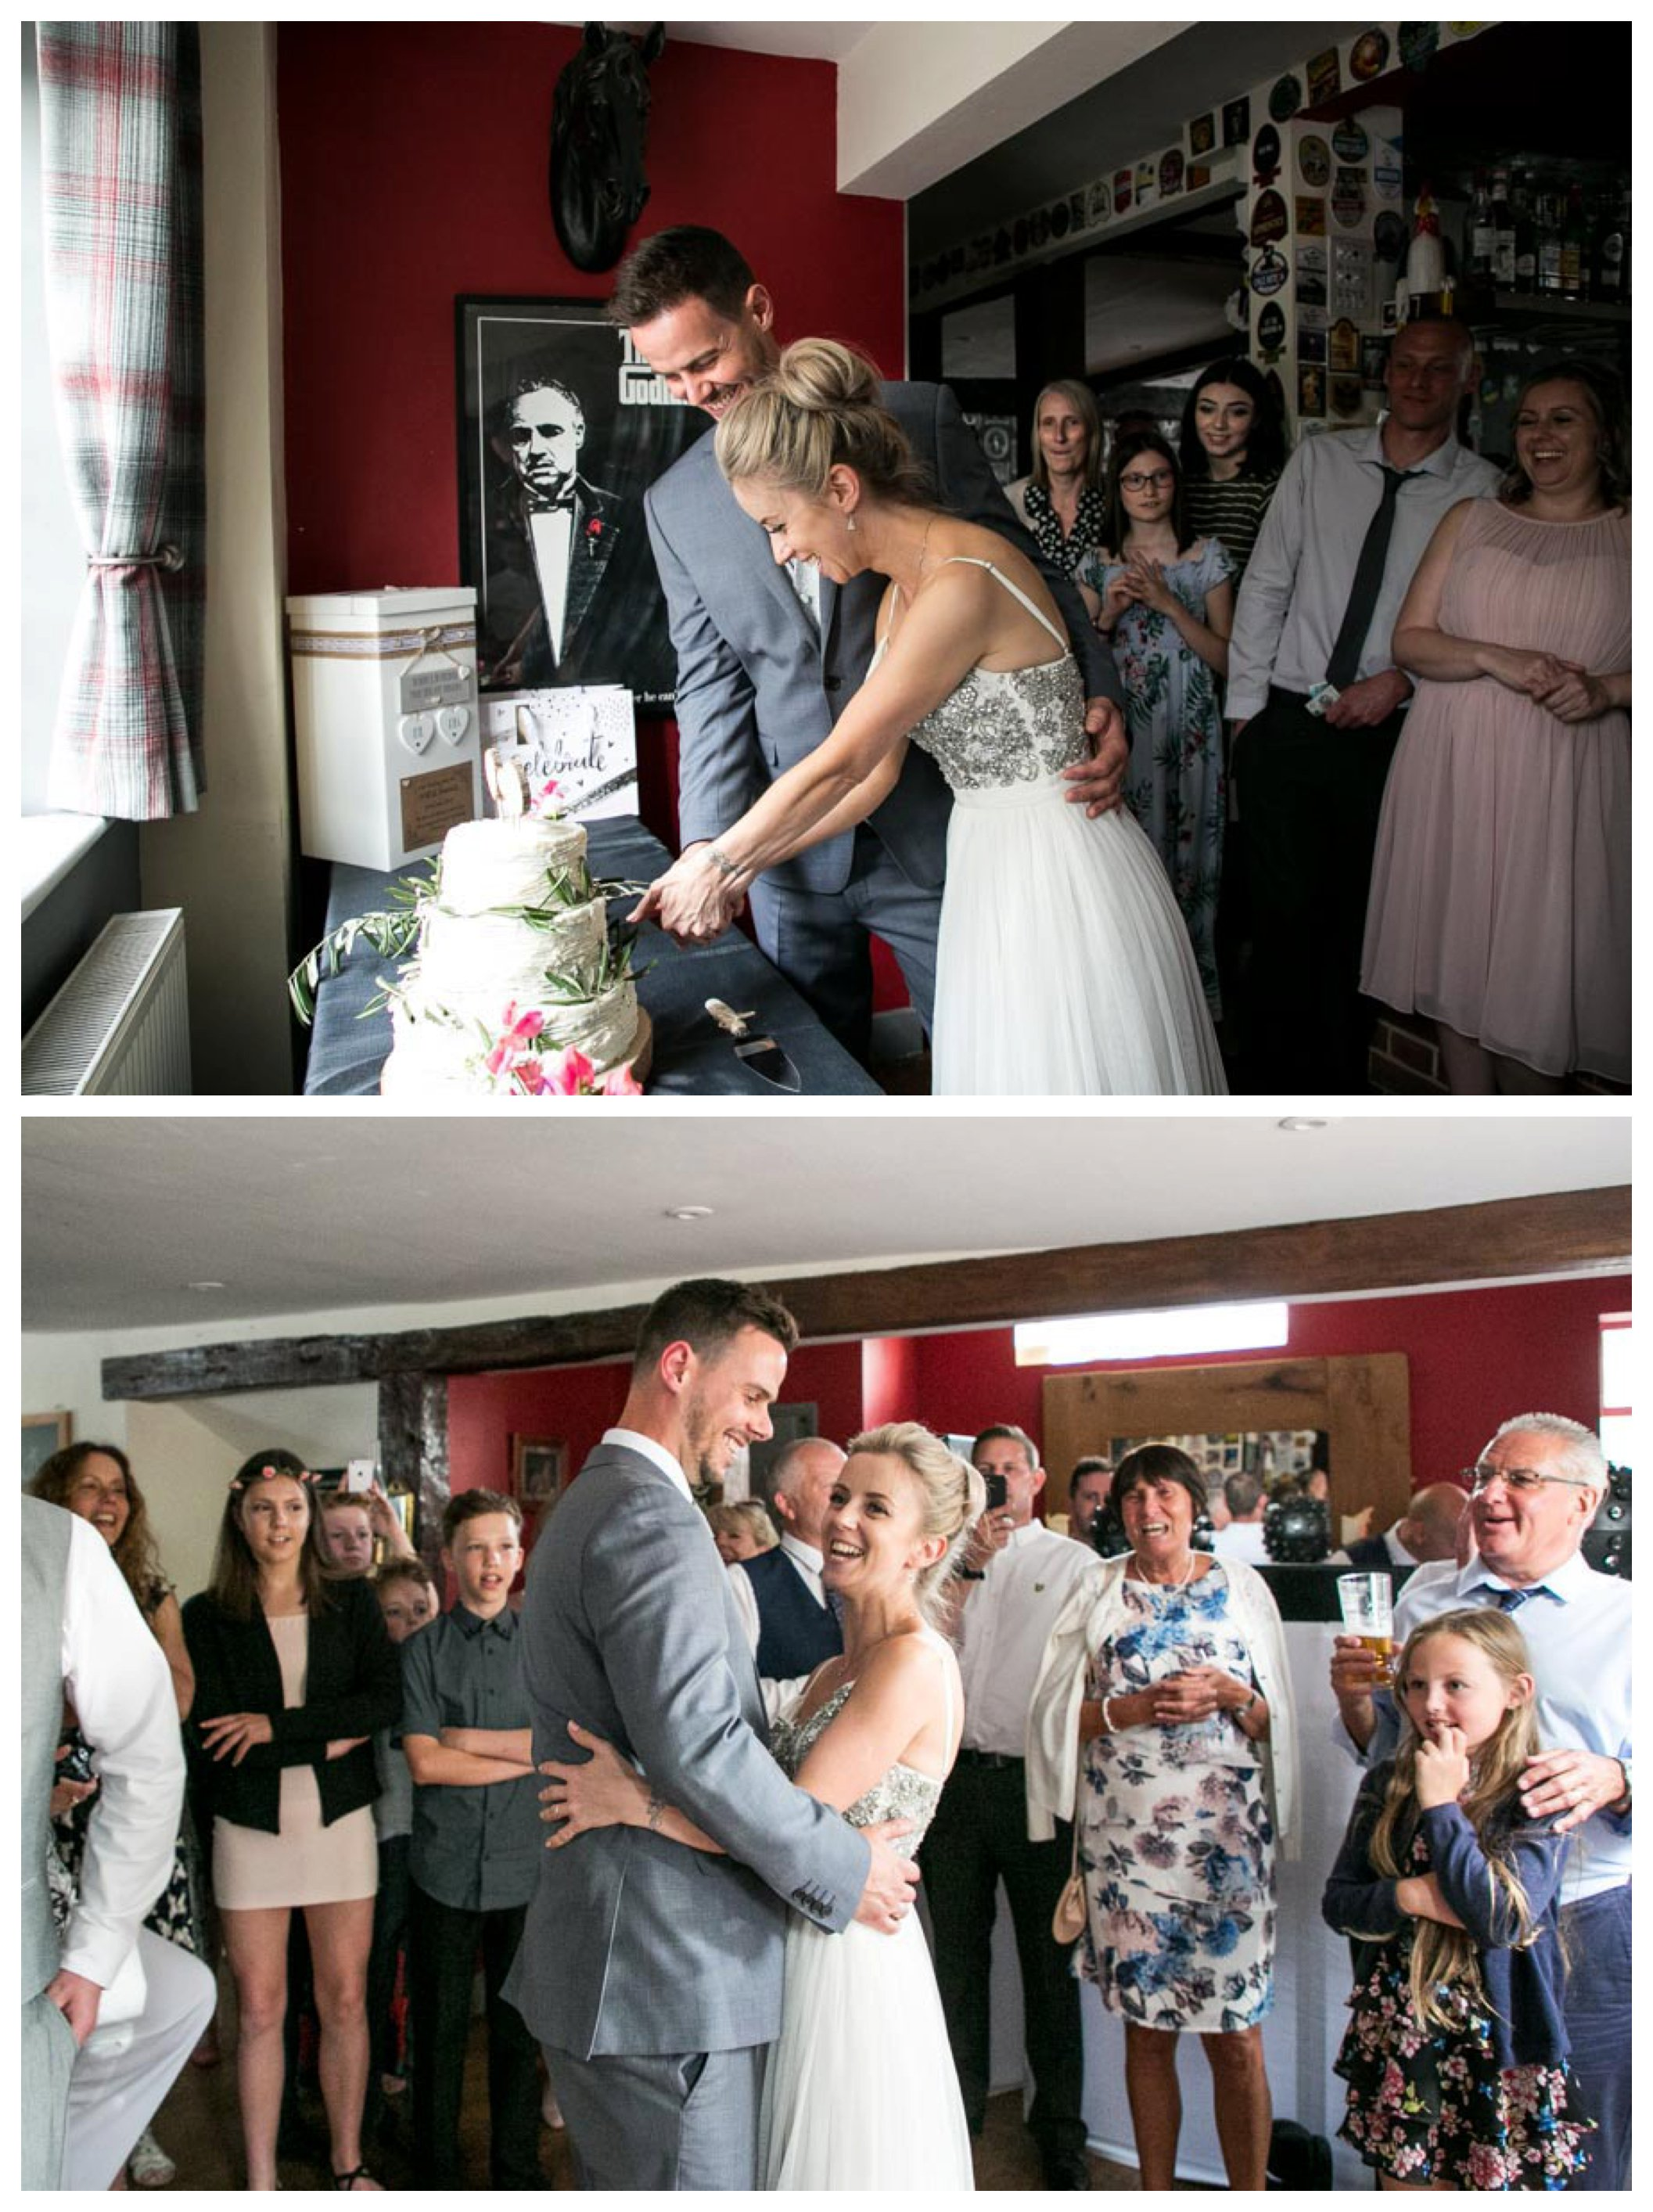 bride and groom cutting cake and having first dance at pub wedding